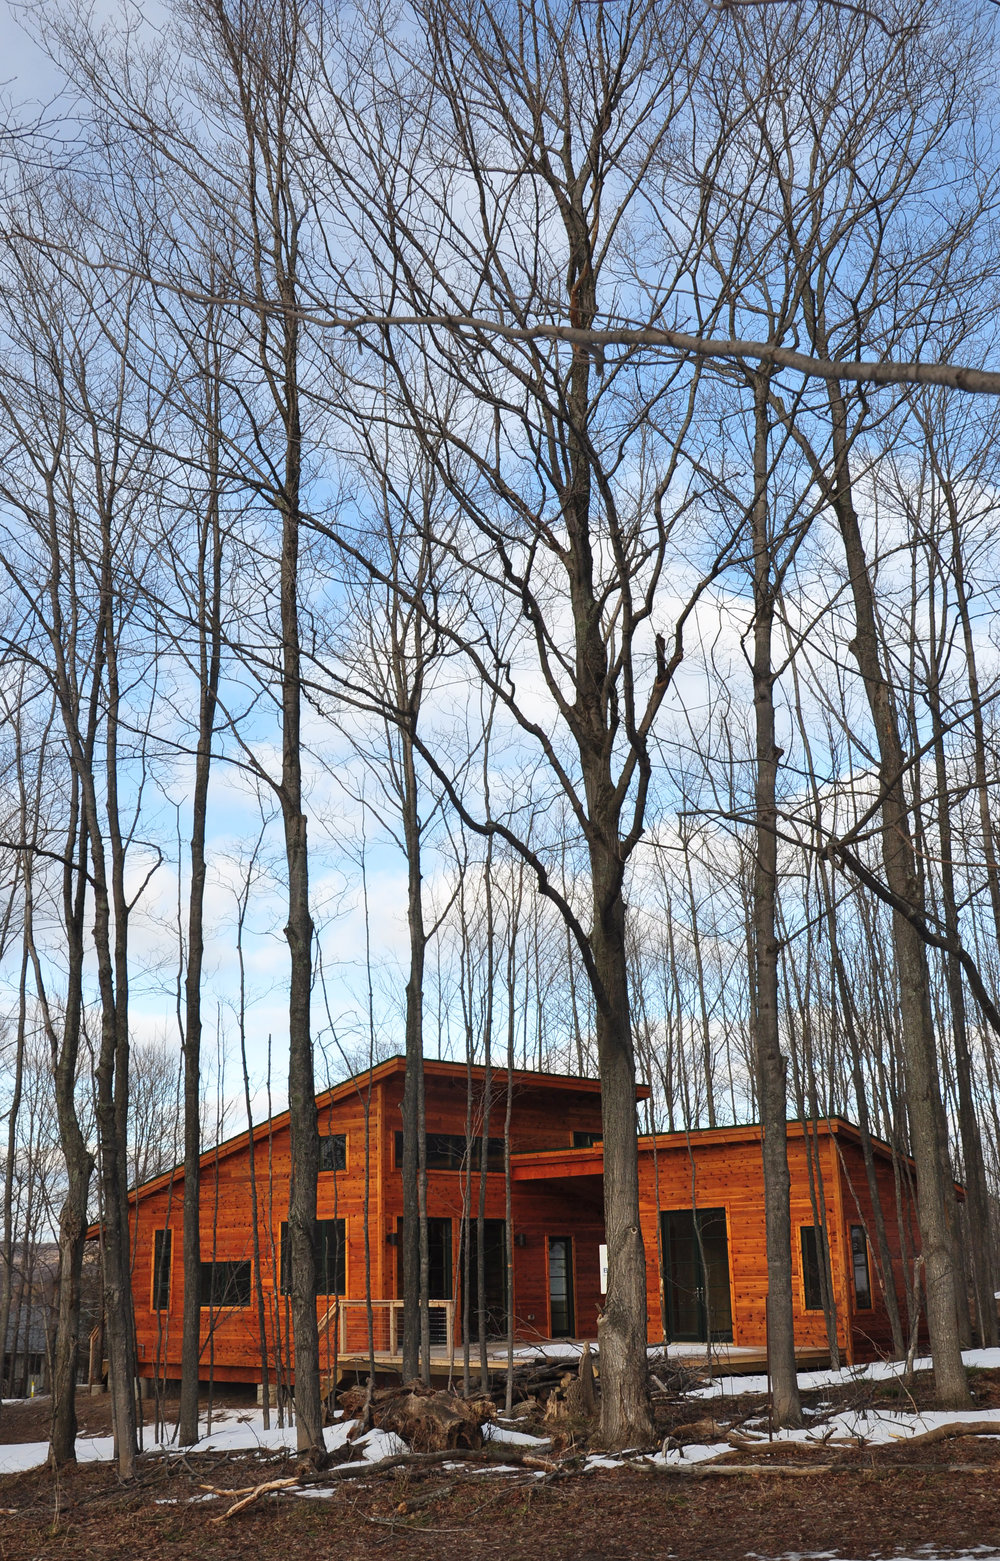 custom single family residential vacation house in forest trees, energy efficient outdoor living